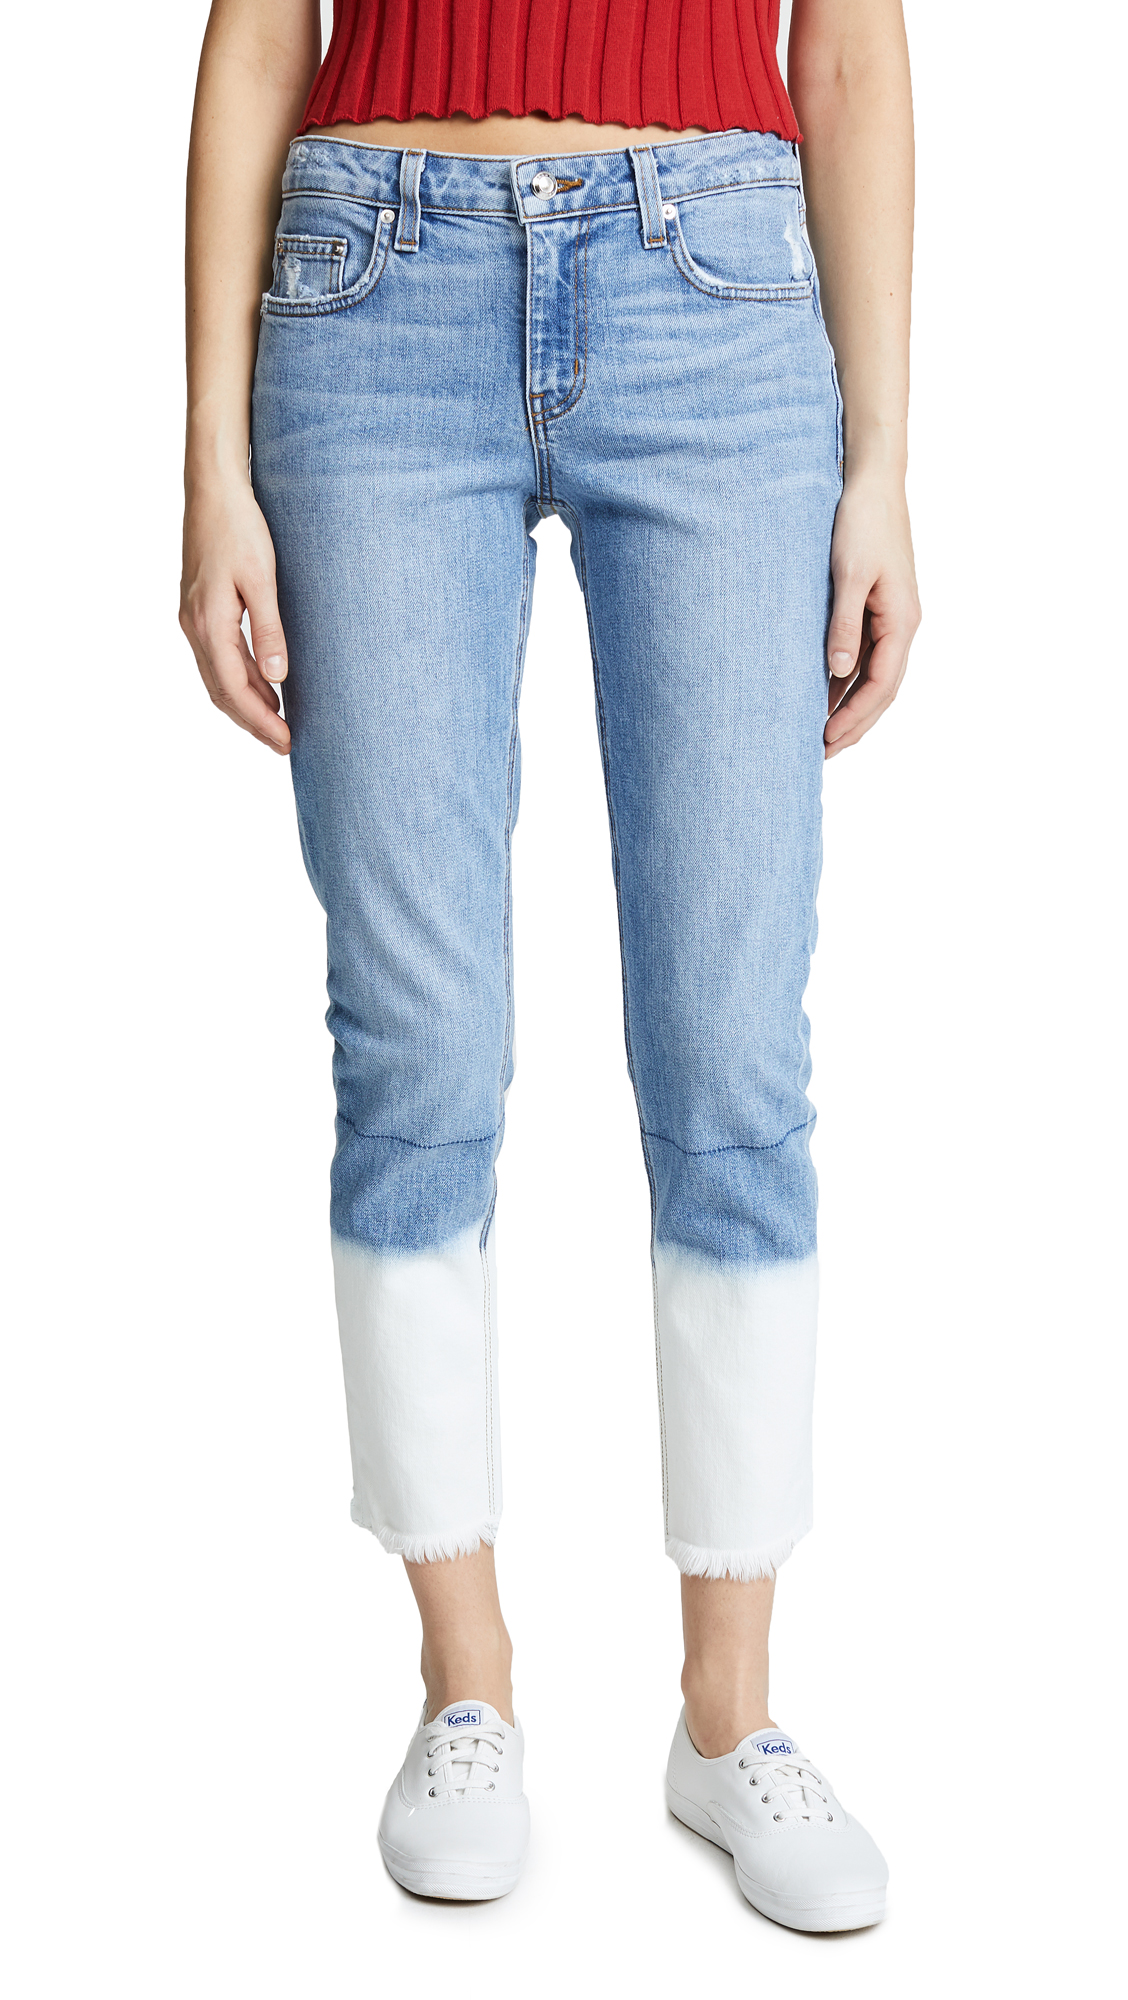 Derek Lam 10 Crosby Mila Girlfriend Jeans